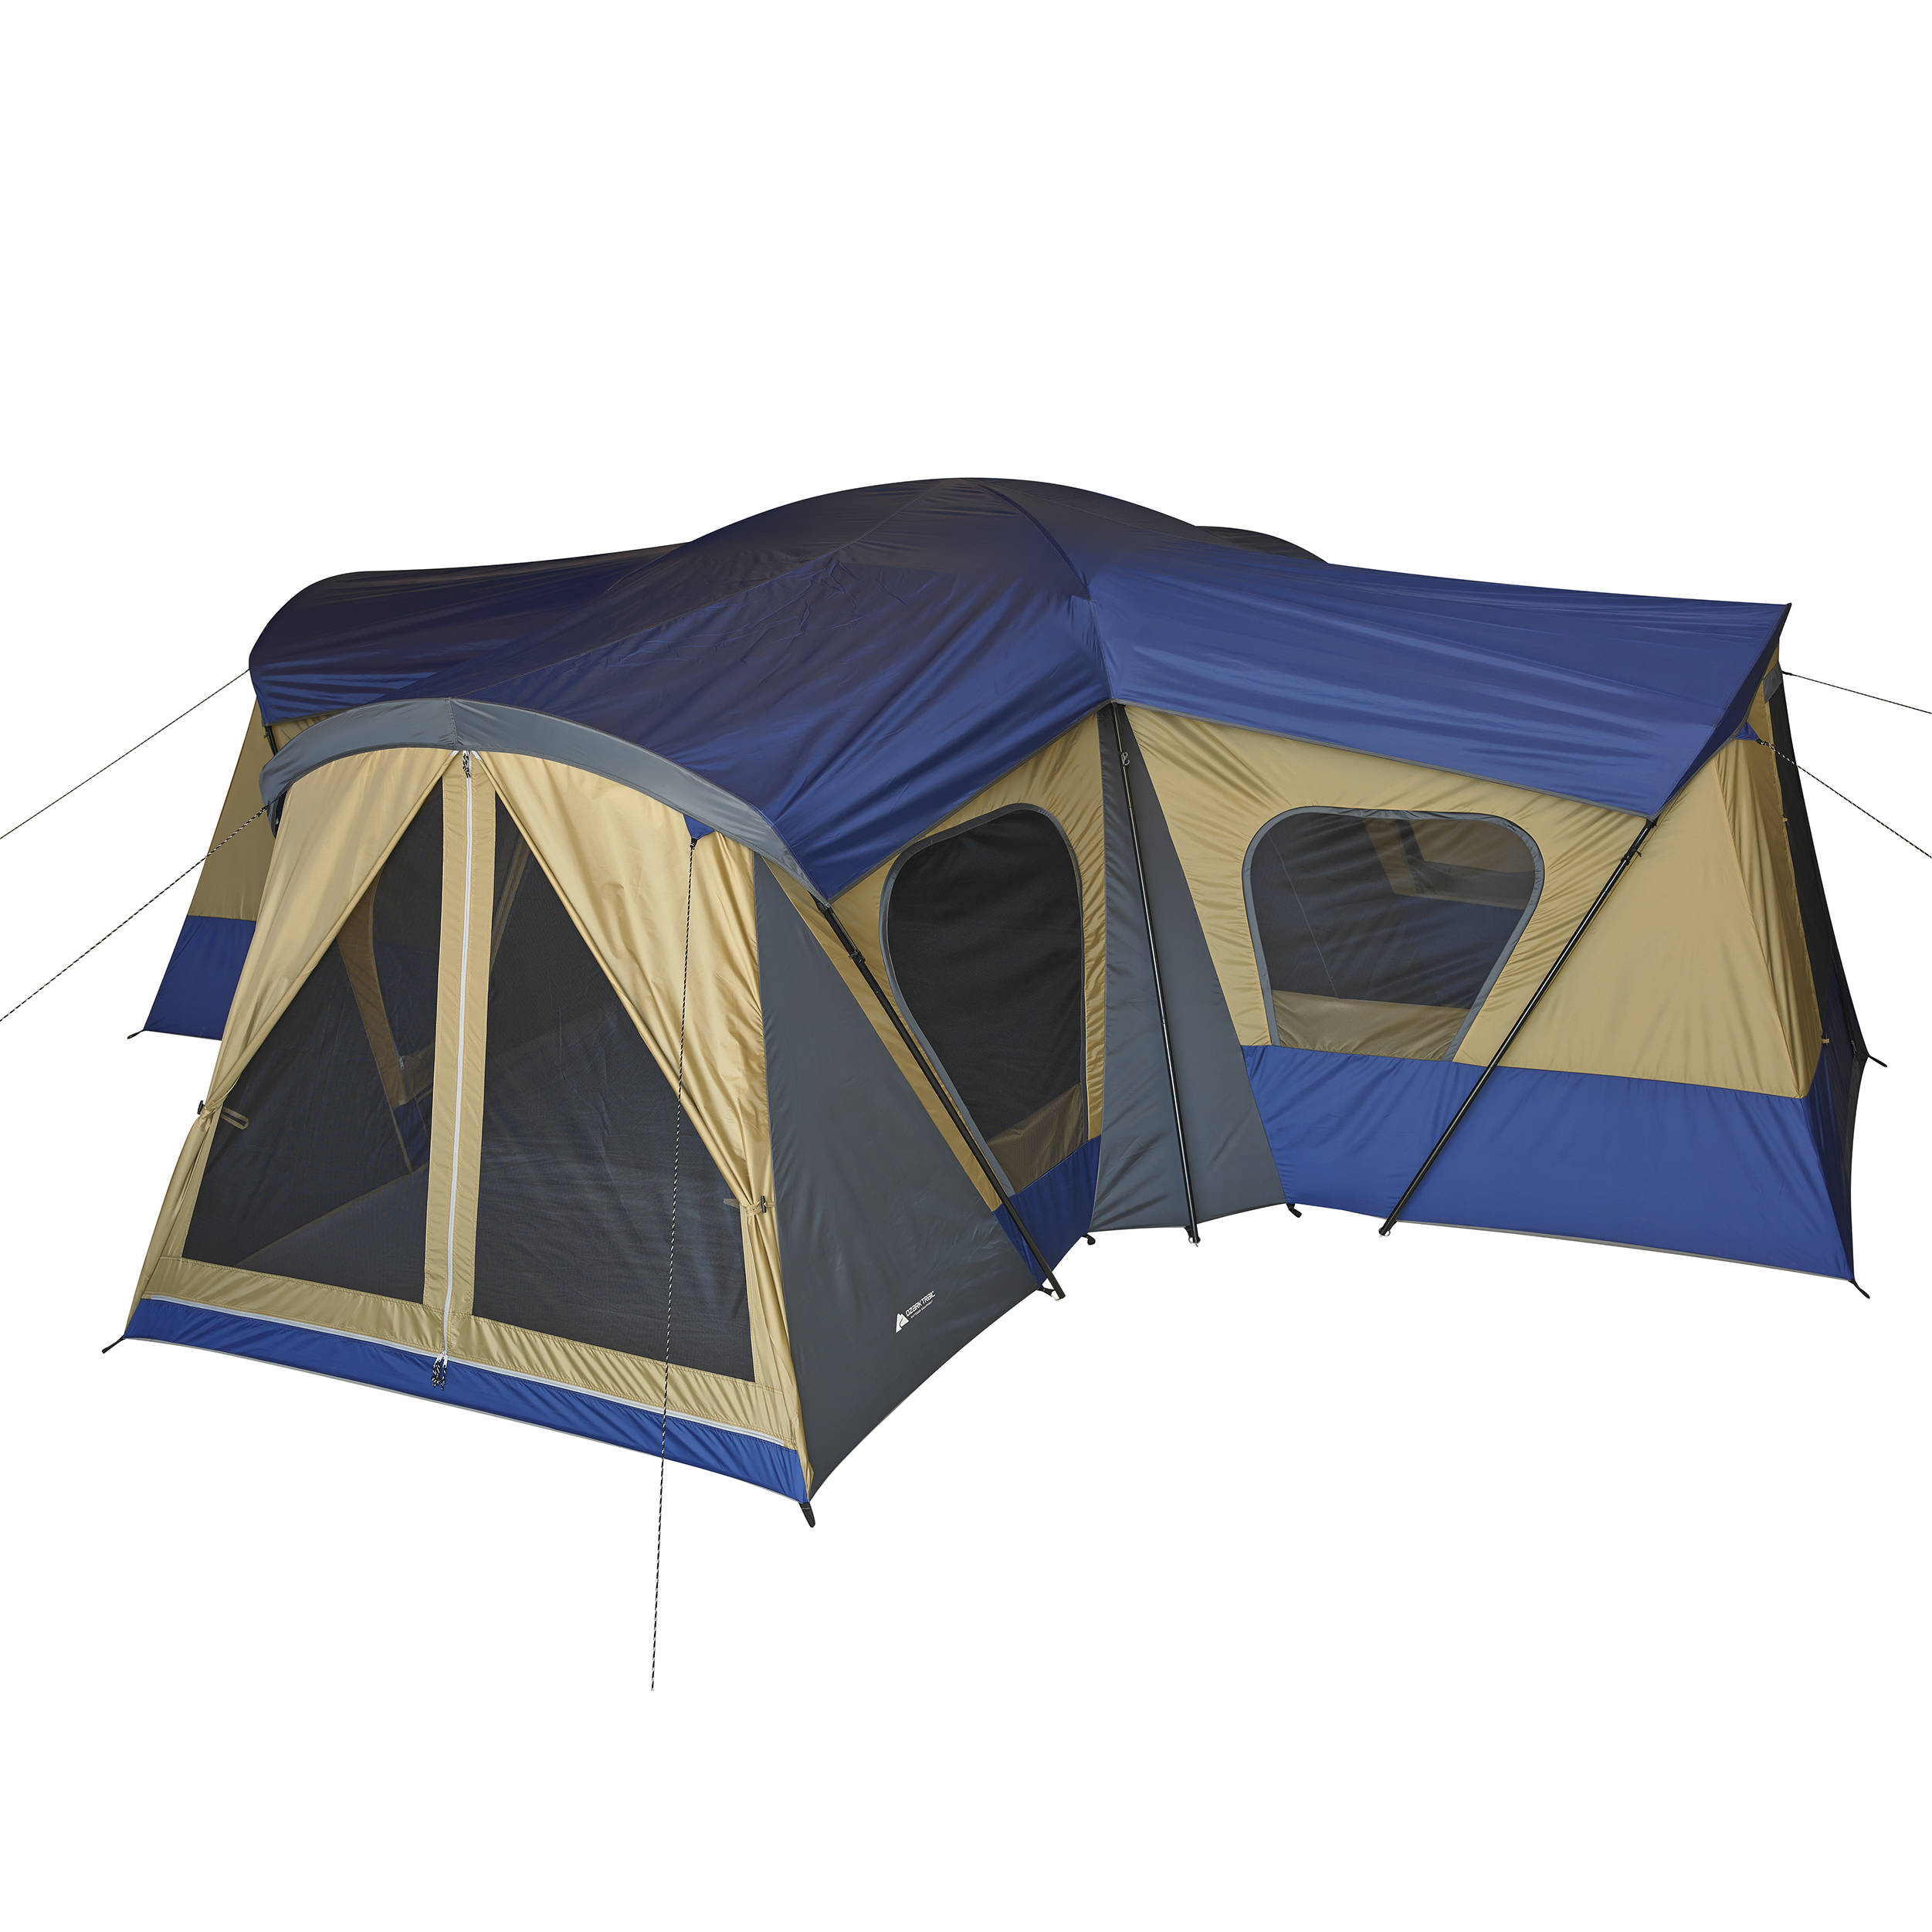 Ozark Trail 10 Person 3 Room Cabin Tent Walmart Com